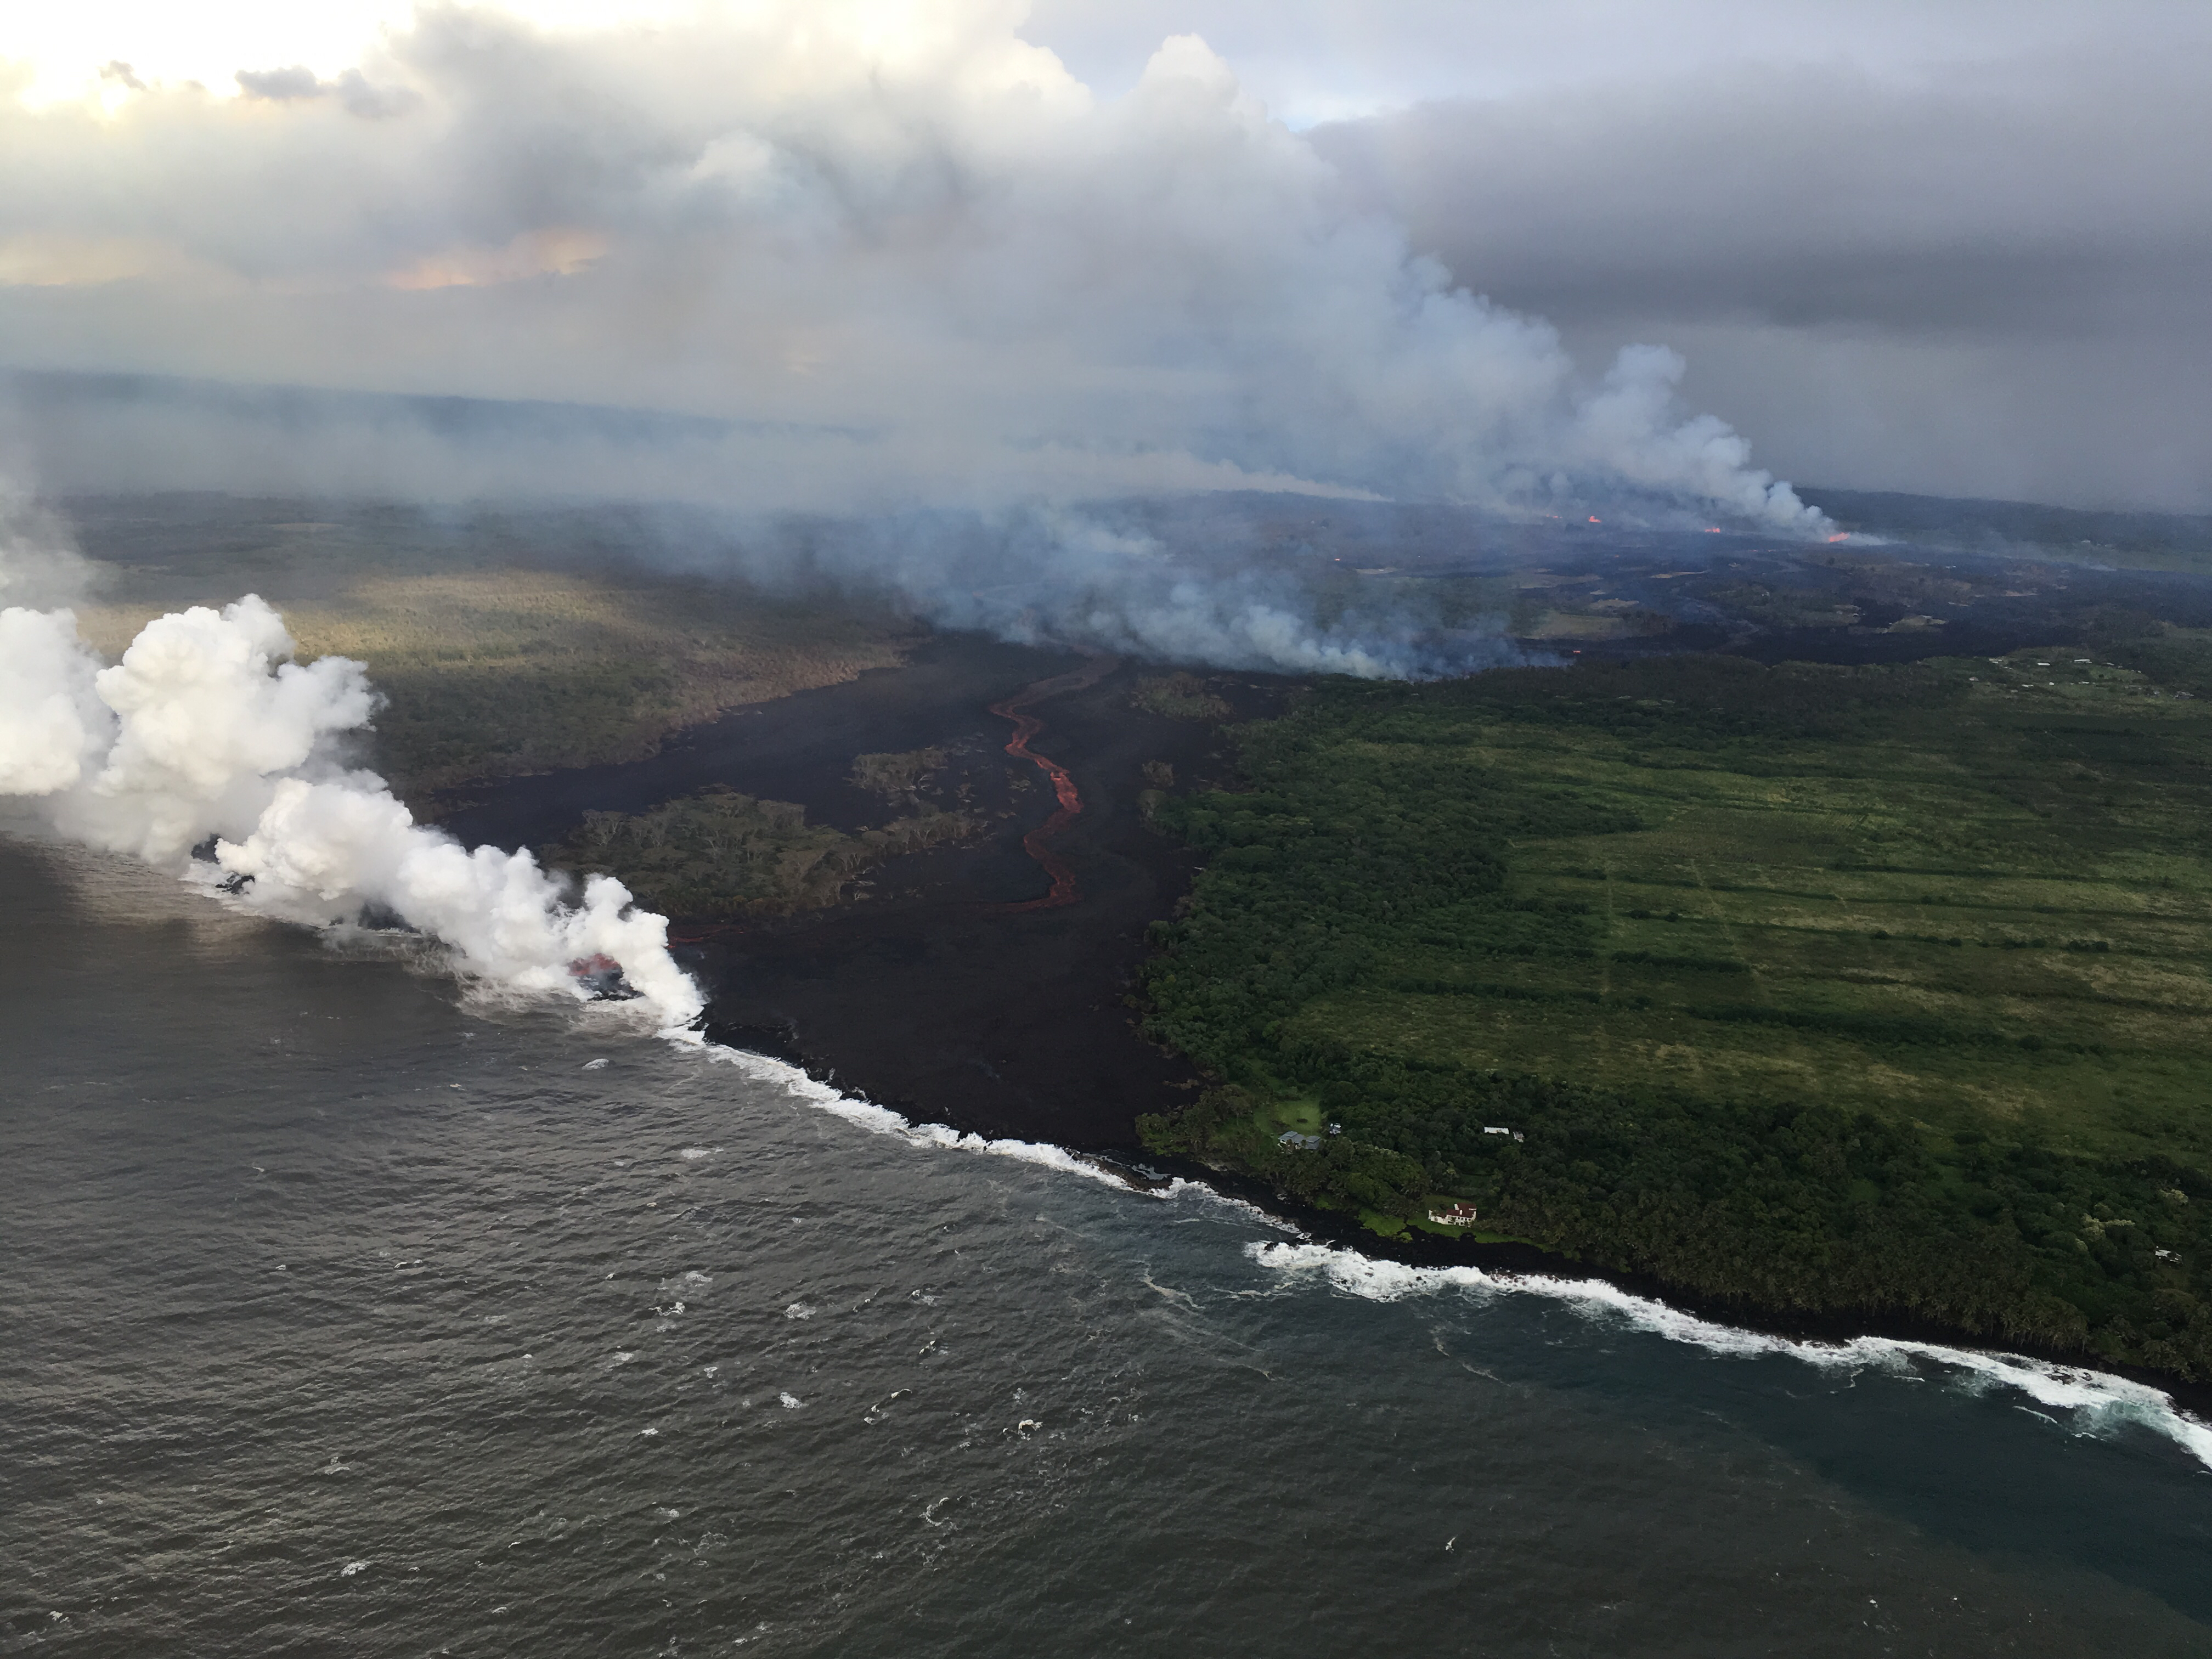 No End in Sight: Hawaii's Kilauea Volcano Eruption Could Threaten Geothermal Plant